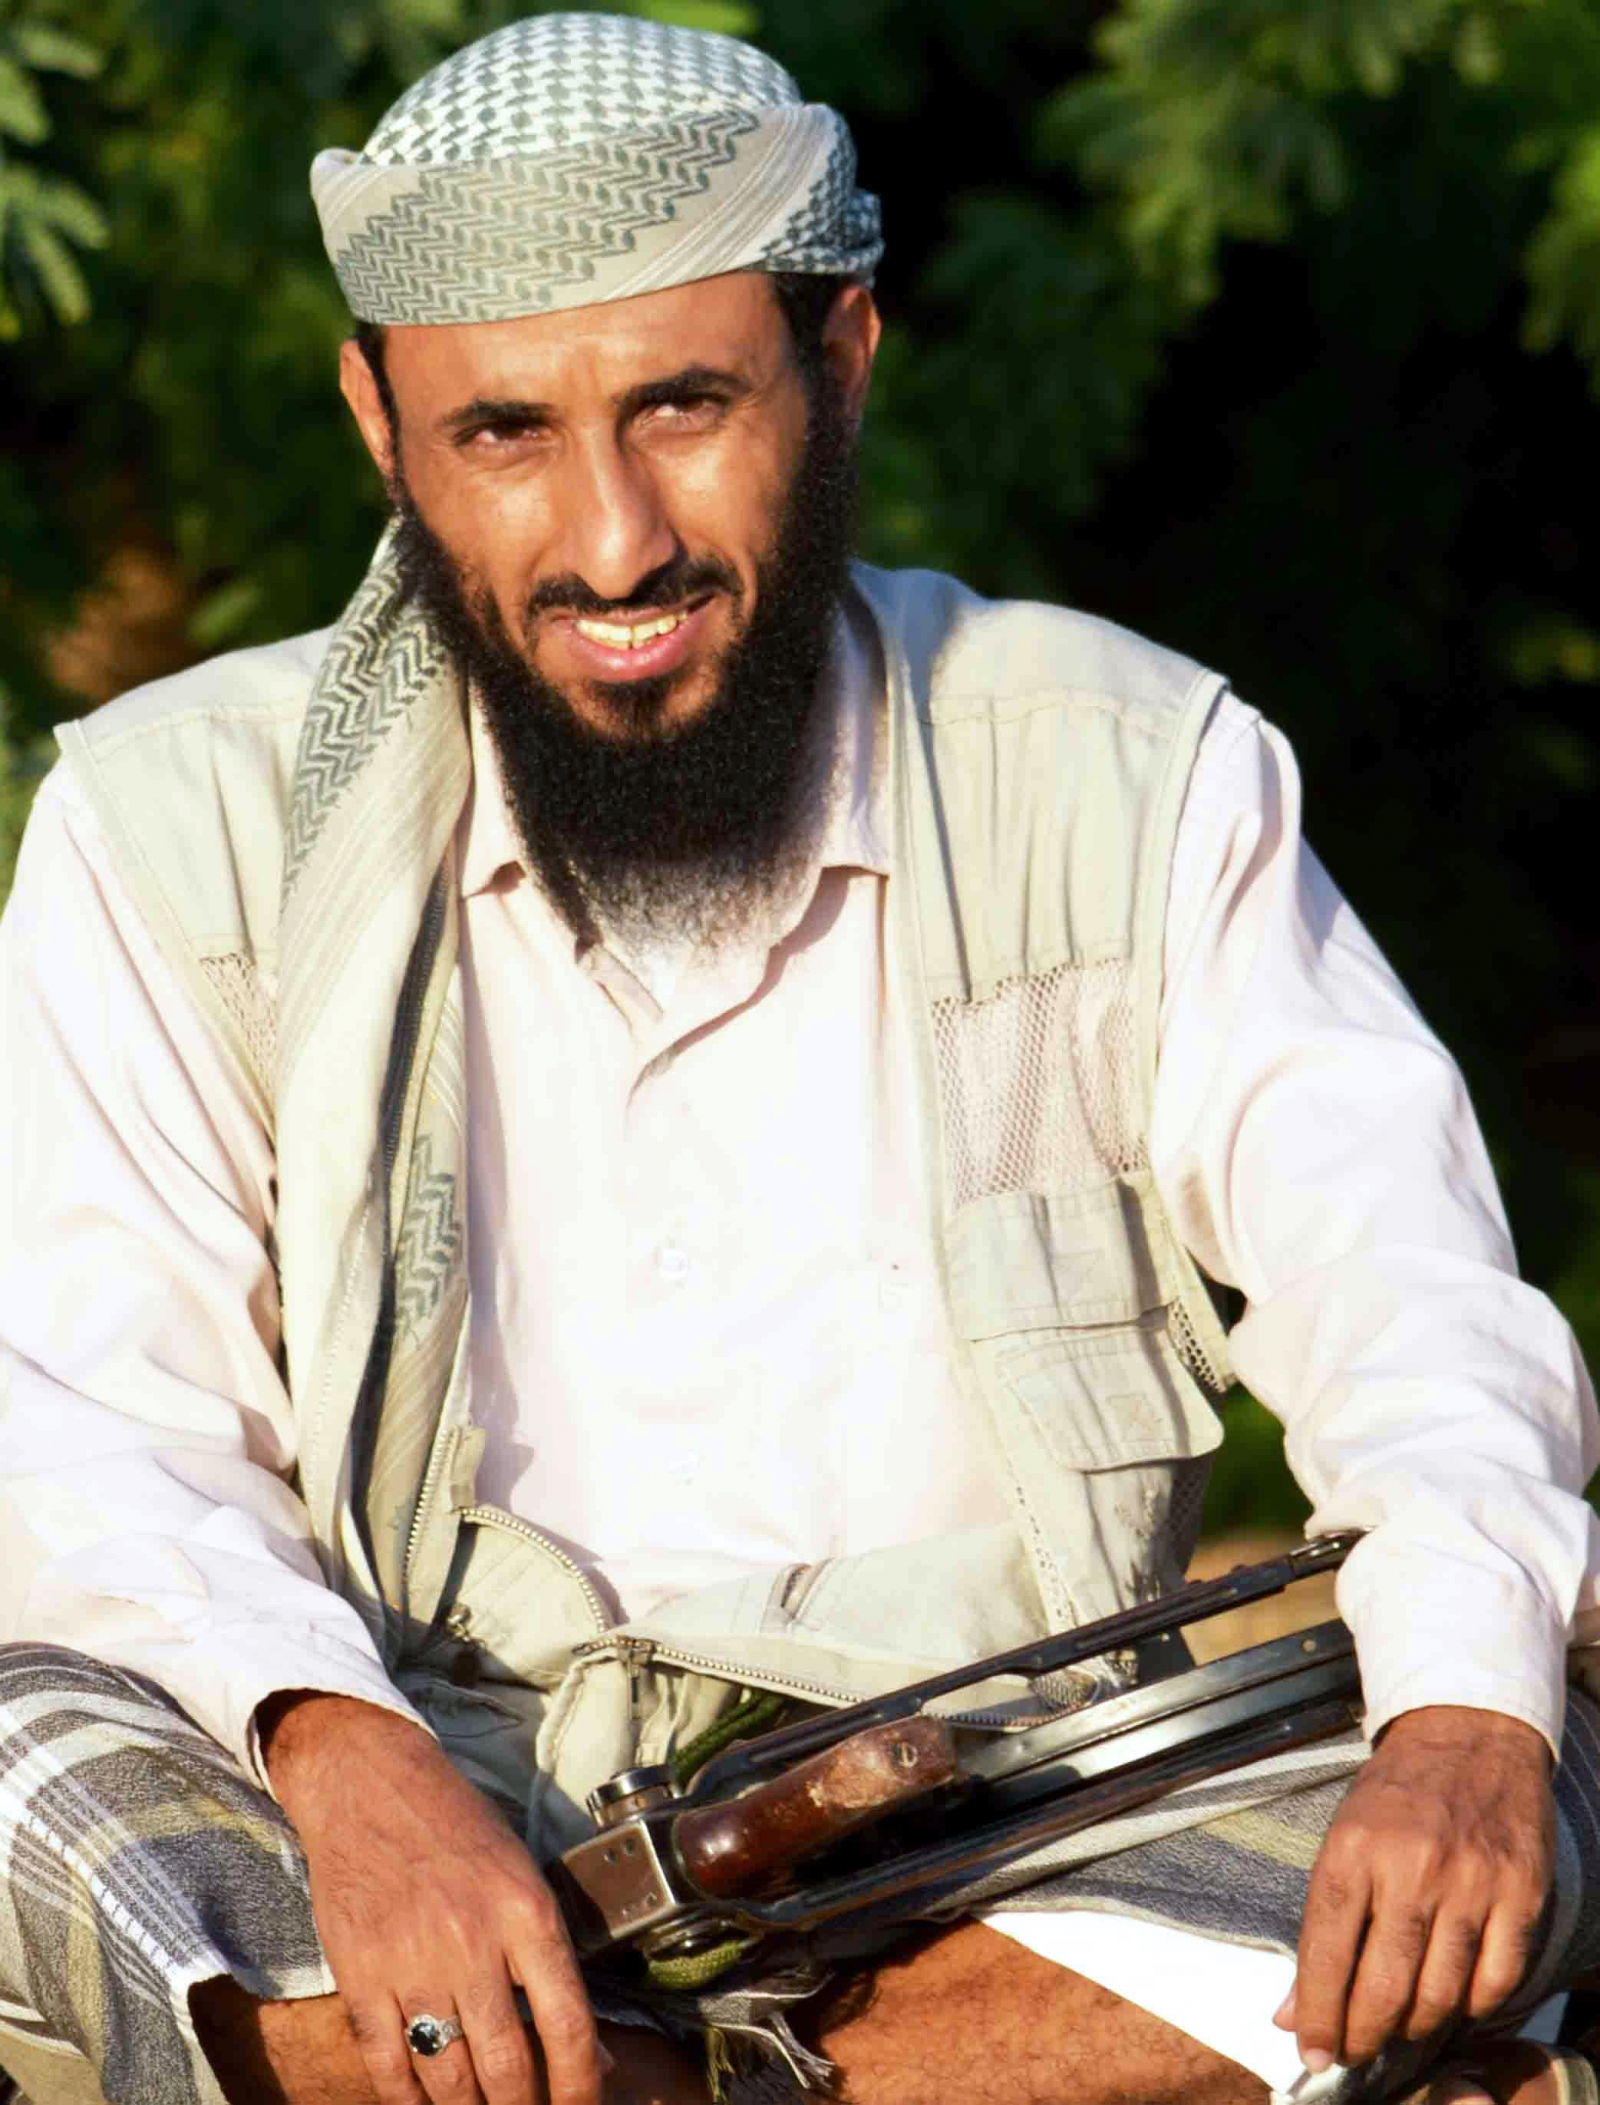 AQAP leader killed in US drone strike